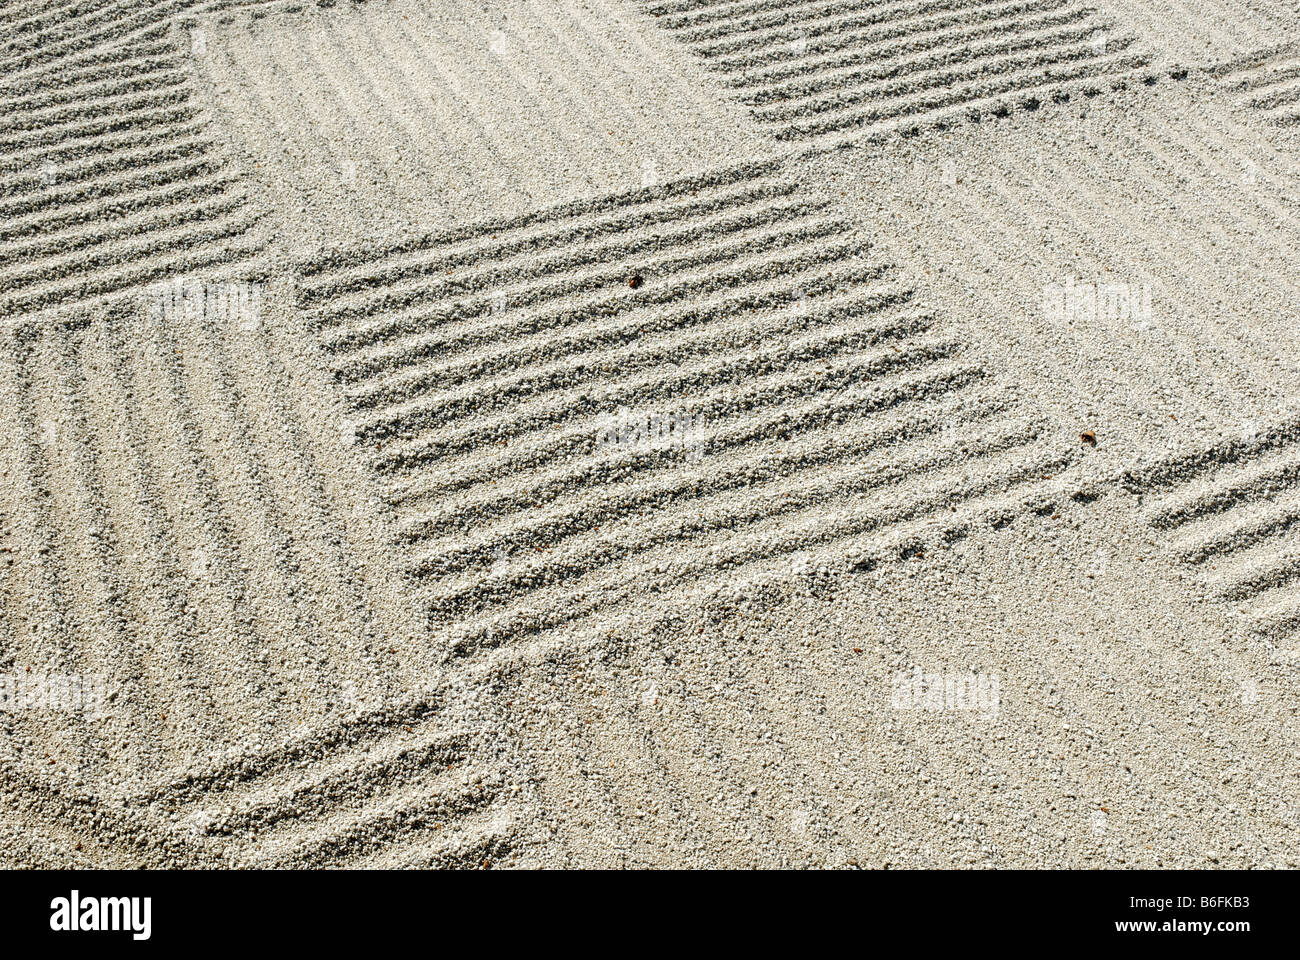 Japanese, patterned sand in a flat level garden, Flat Garden, Hira Niwa, Japan, Asia - Stock Image